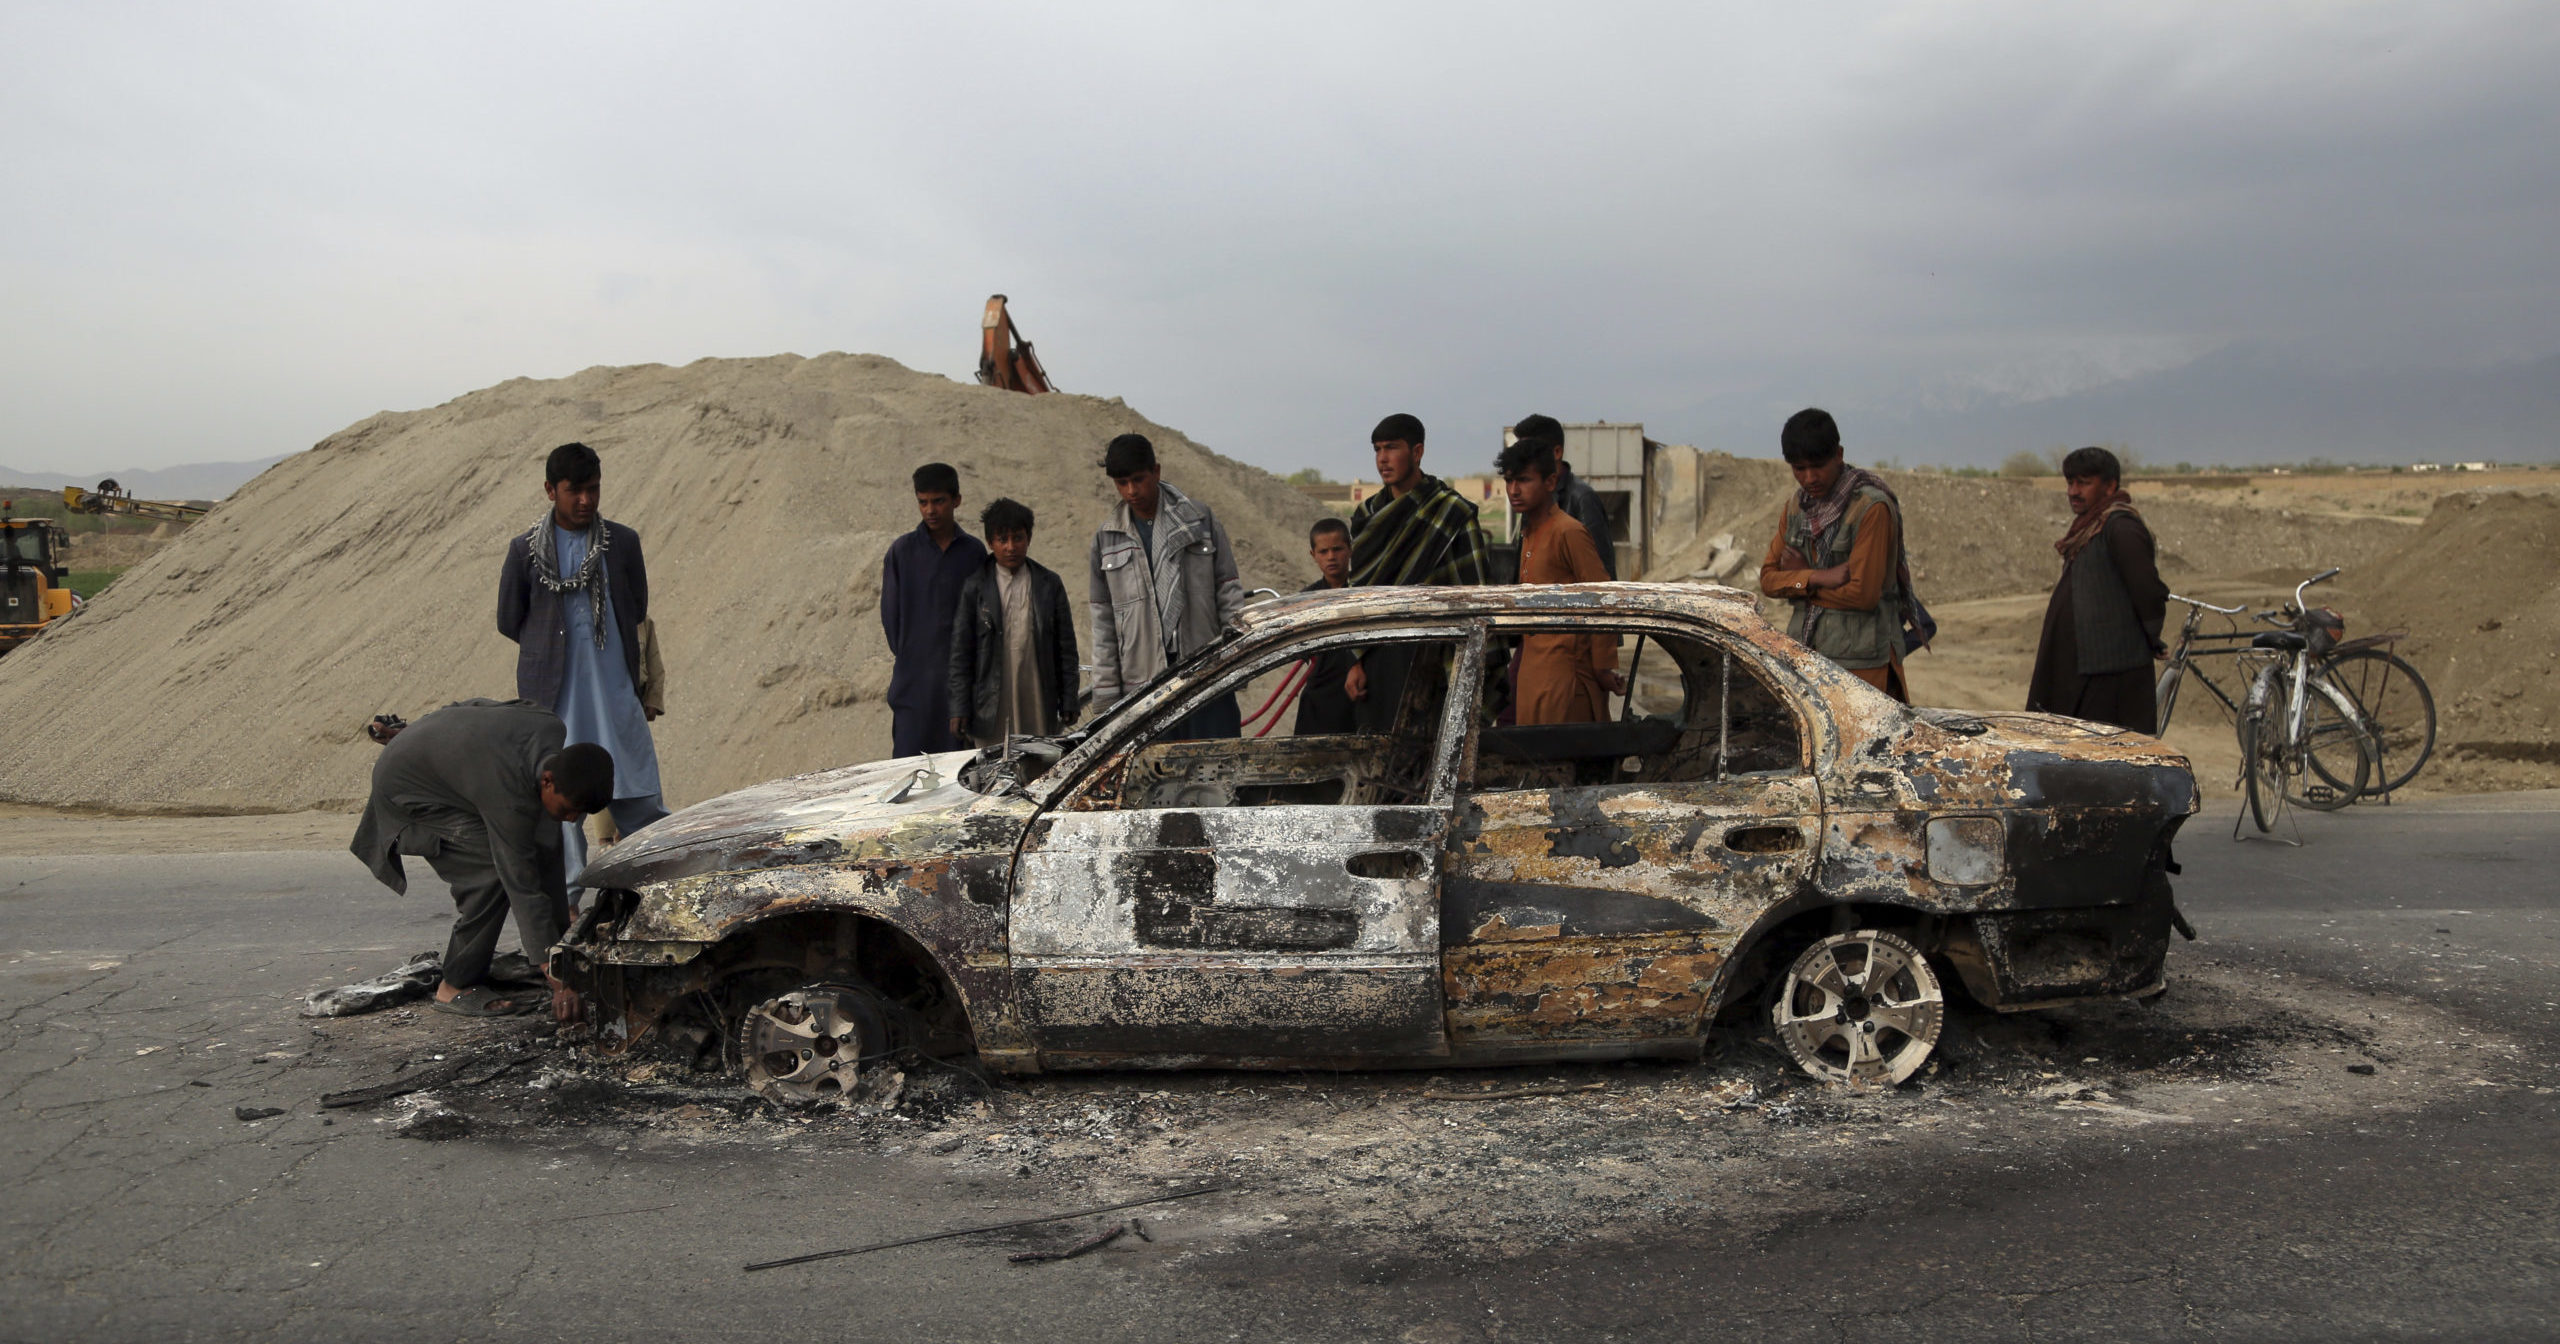 In this April 9, 2019, file photo, Afghans watch a vehicle burn after being shot by U.S. forces following a Taliban attack near the Bagram Air Base, north of Kabul, Afghanistan.